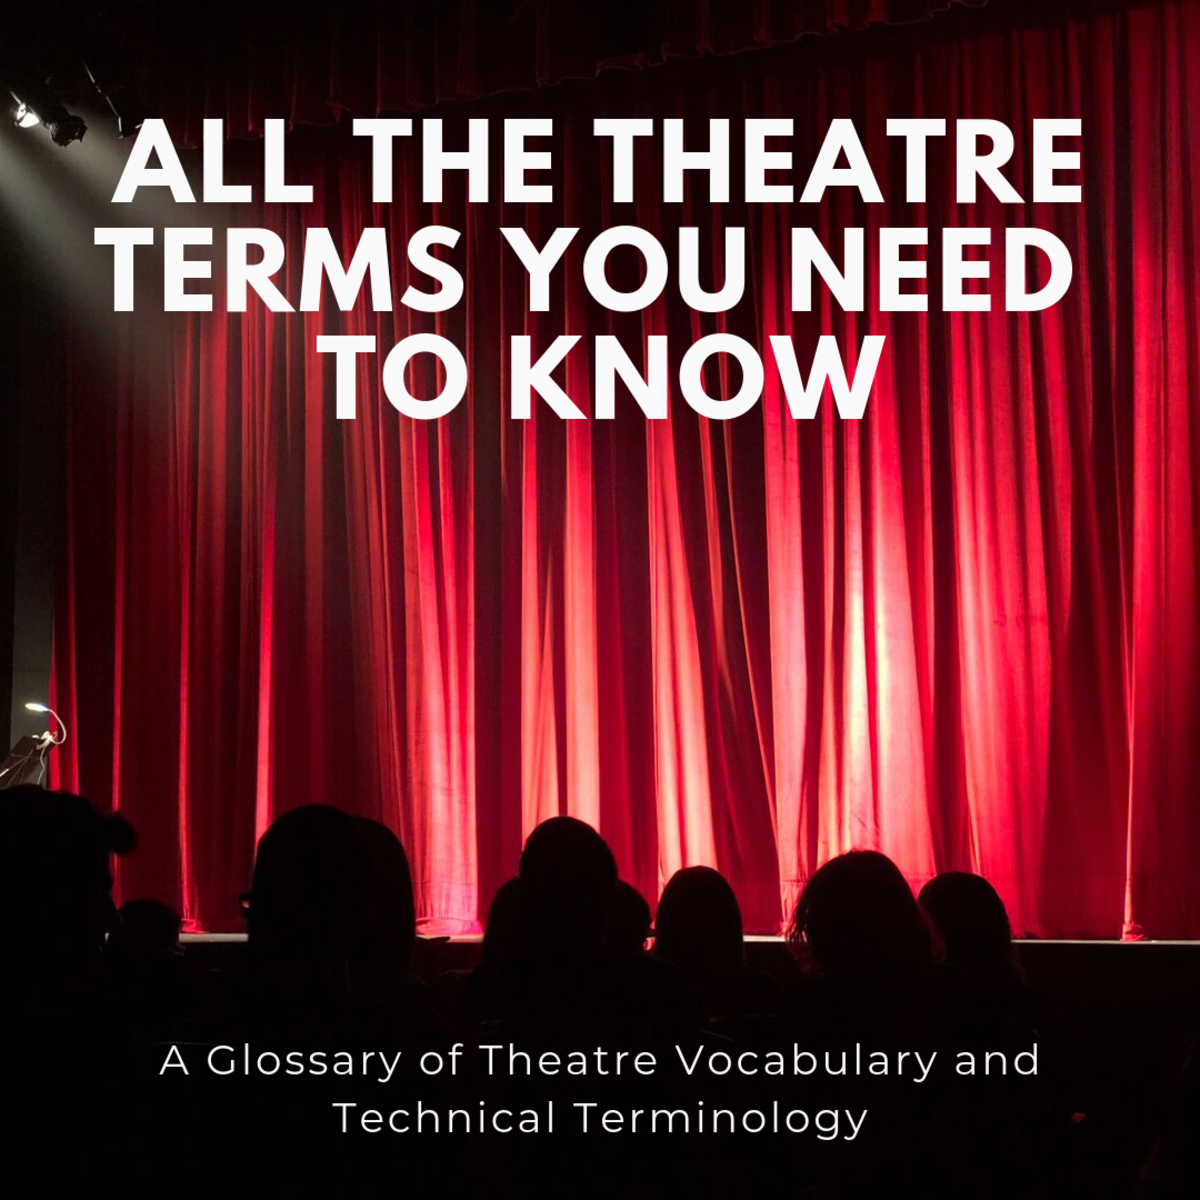 Broadway and Theatre Vocabulary and Terms